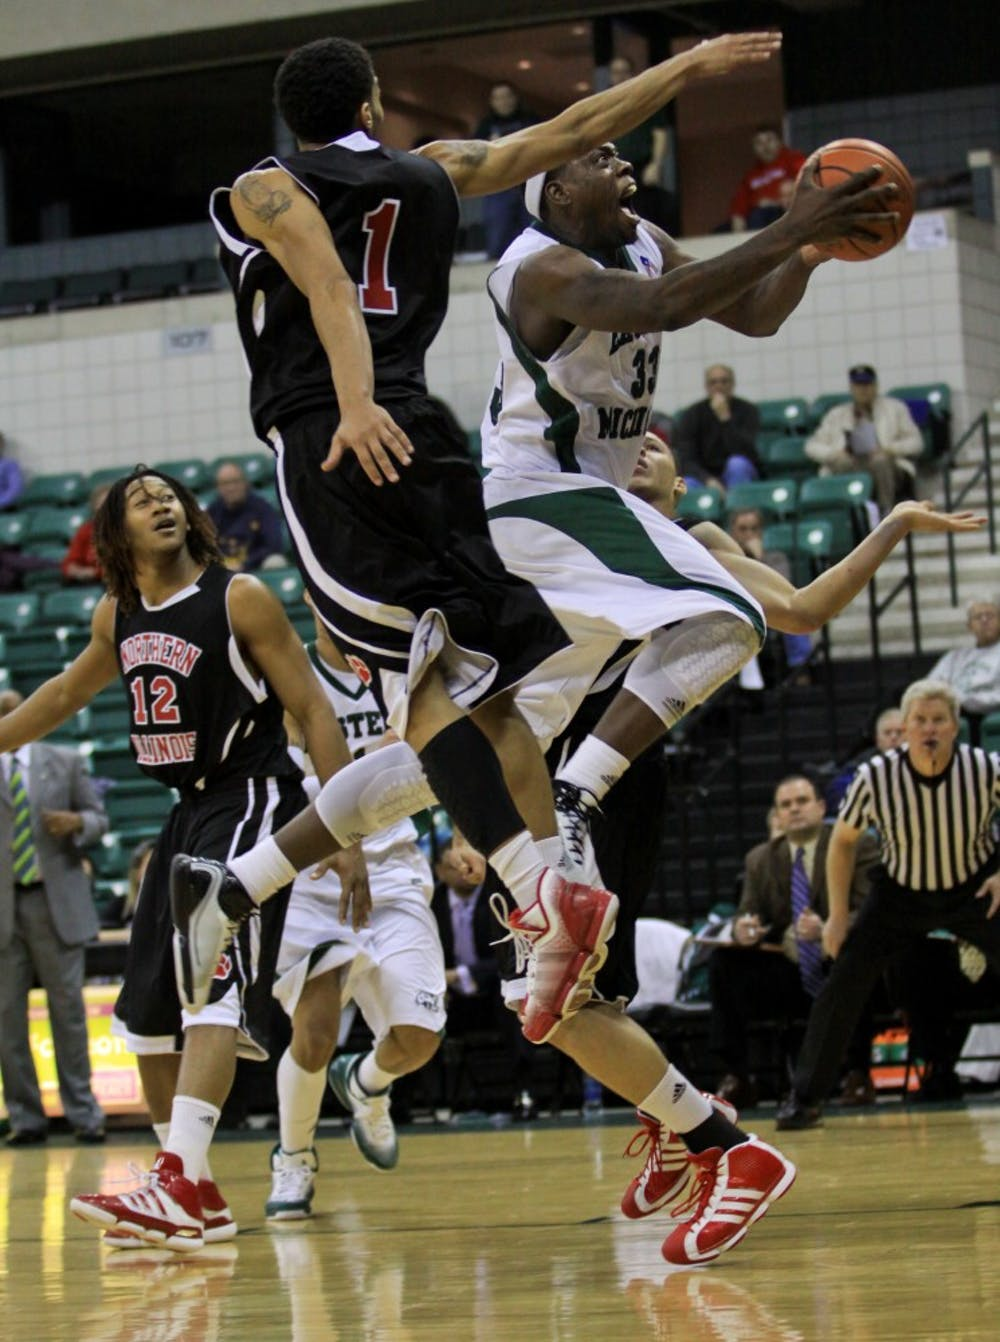 Basketball falls to WMU as Bowdry is suspended